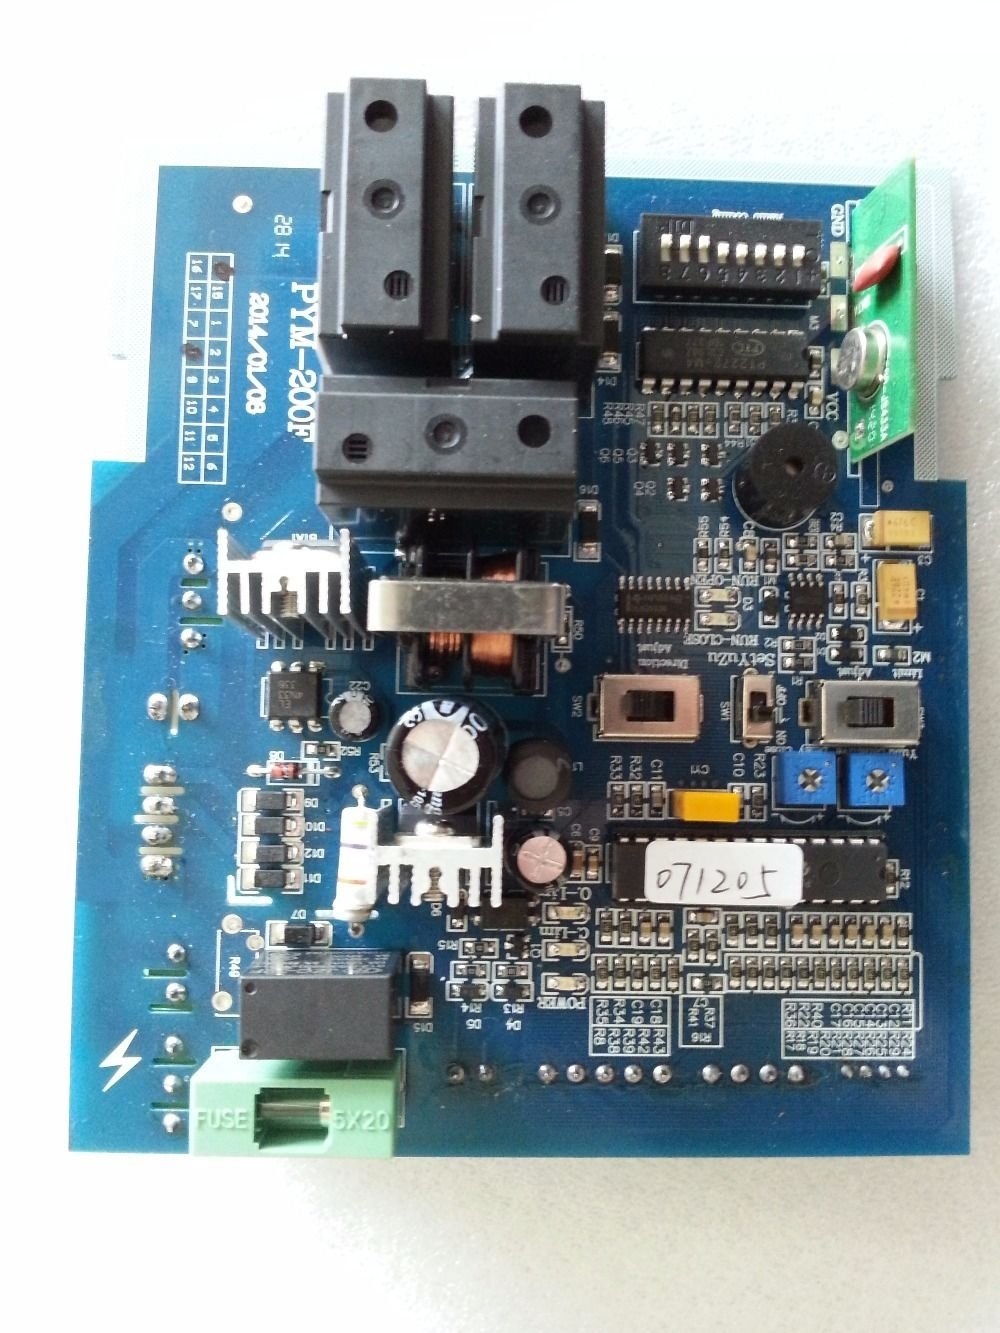 NSEE PYM-200F Circuit Control Board PCB for Slide Gate Door Operator for PY1800